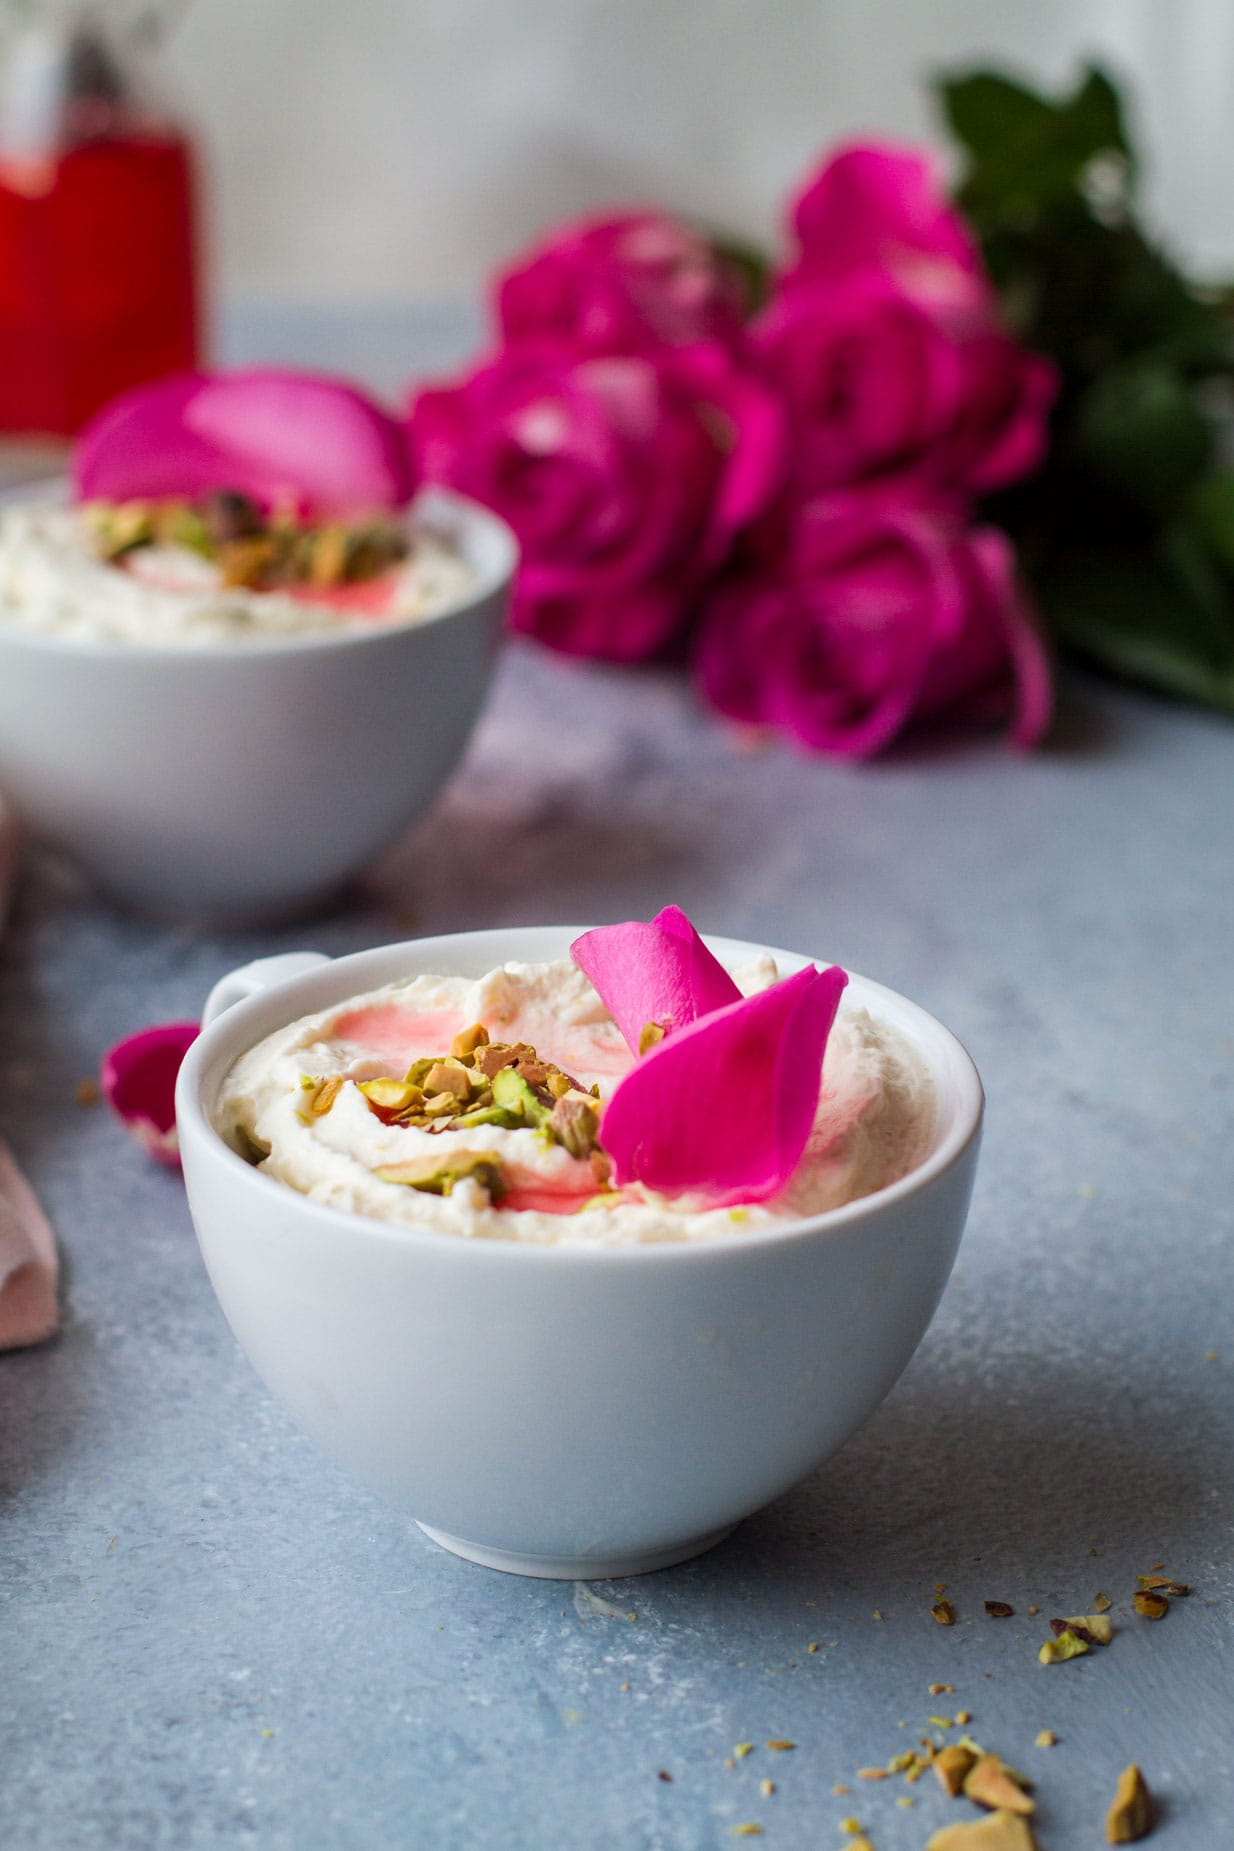 White cup with white chocolate mouse, chopped pistachios and rose petals. Roses and another cup blurred in the background. Blue table.